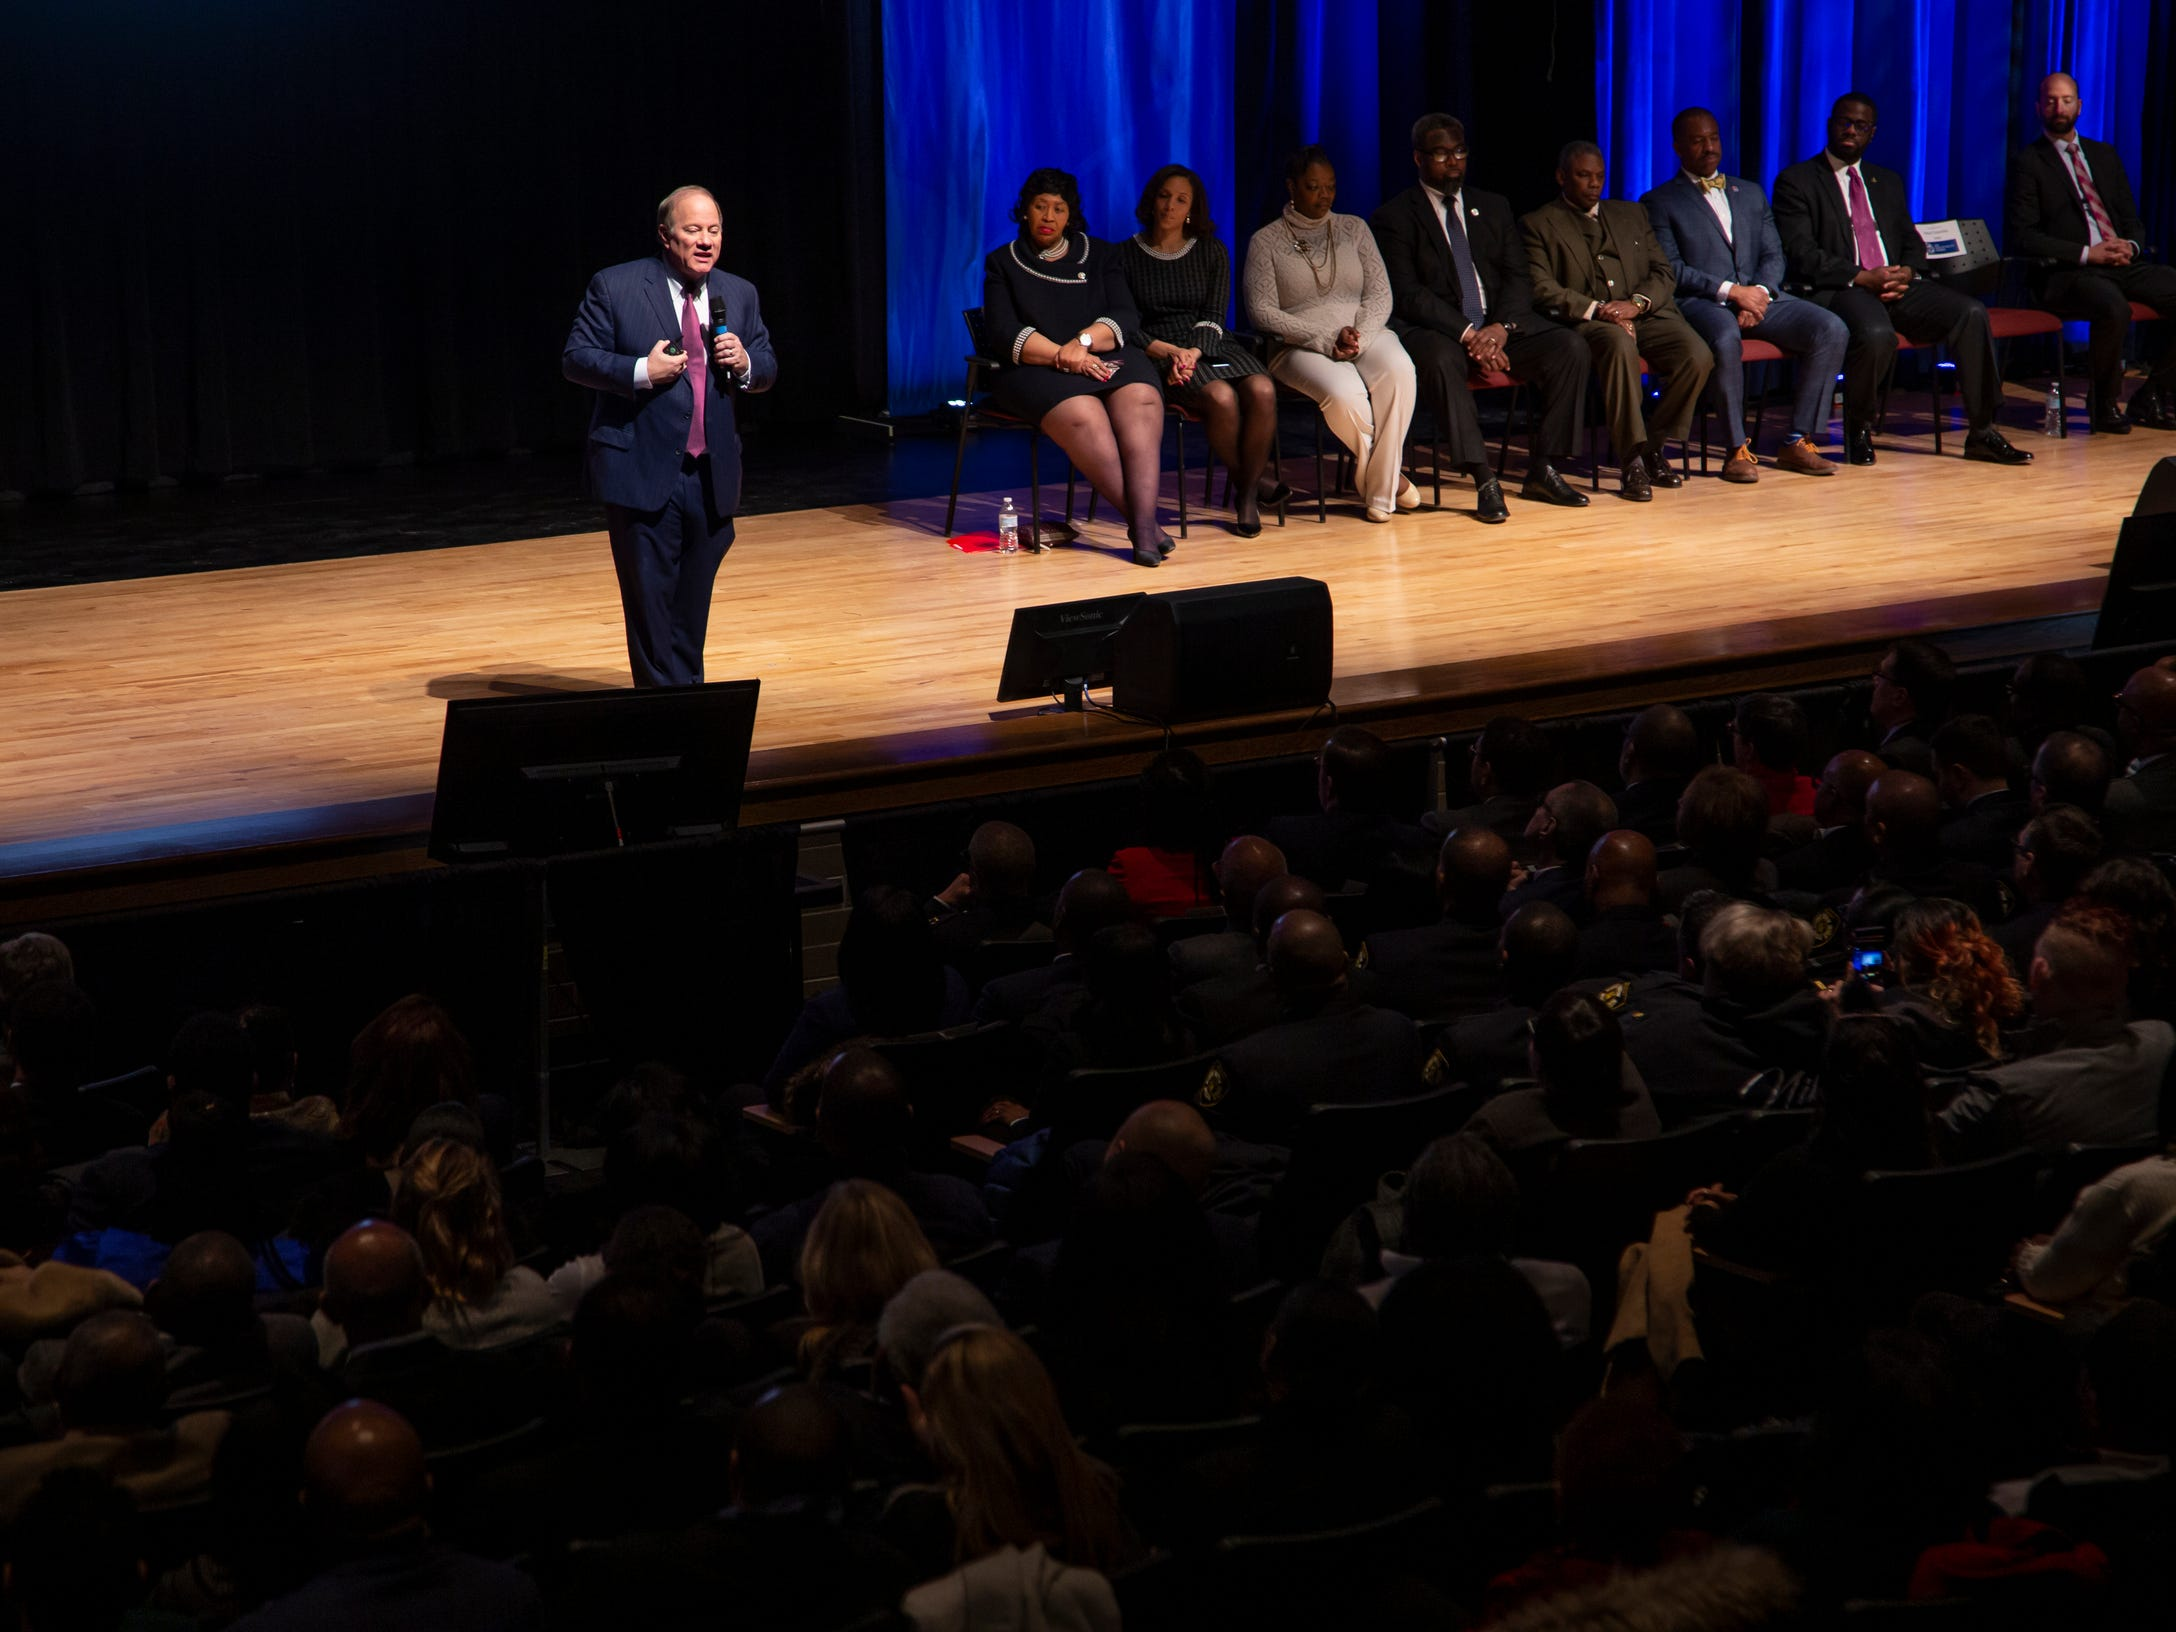 Detroit Mayor Mike Duggan speaks during the 2019 State of the City Address on Tuesday, March 5, 2019 at East English Village Preparatory Academy in Detroit.